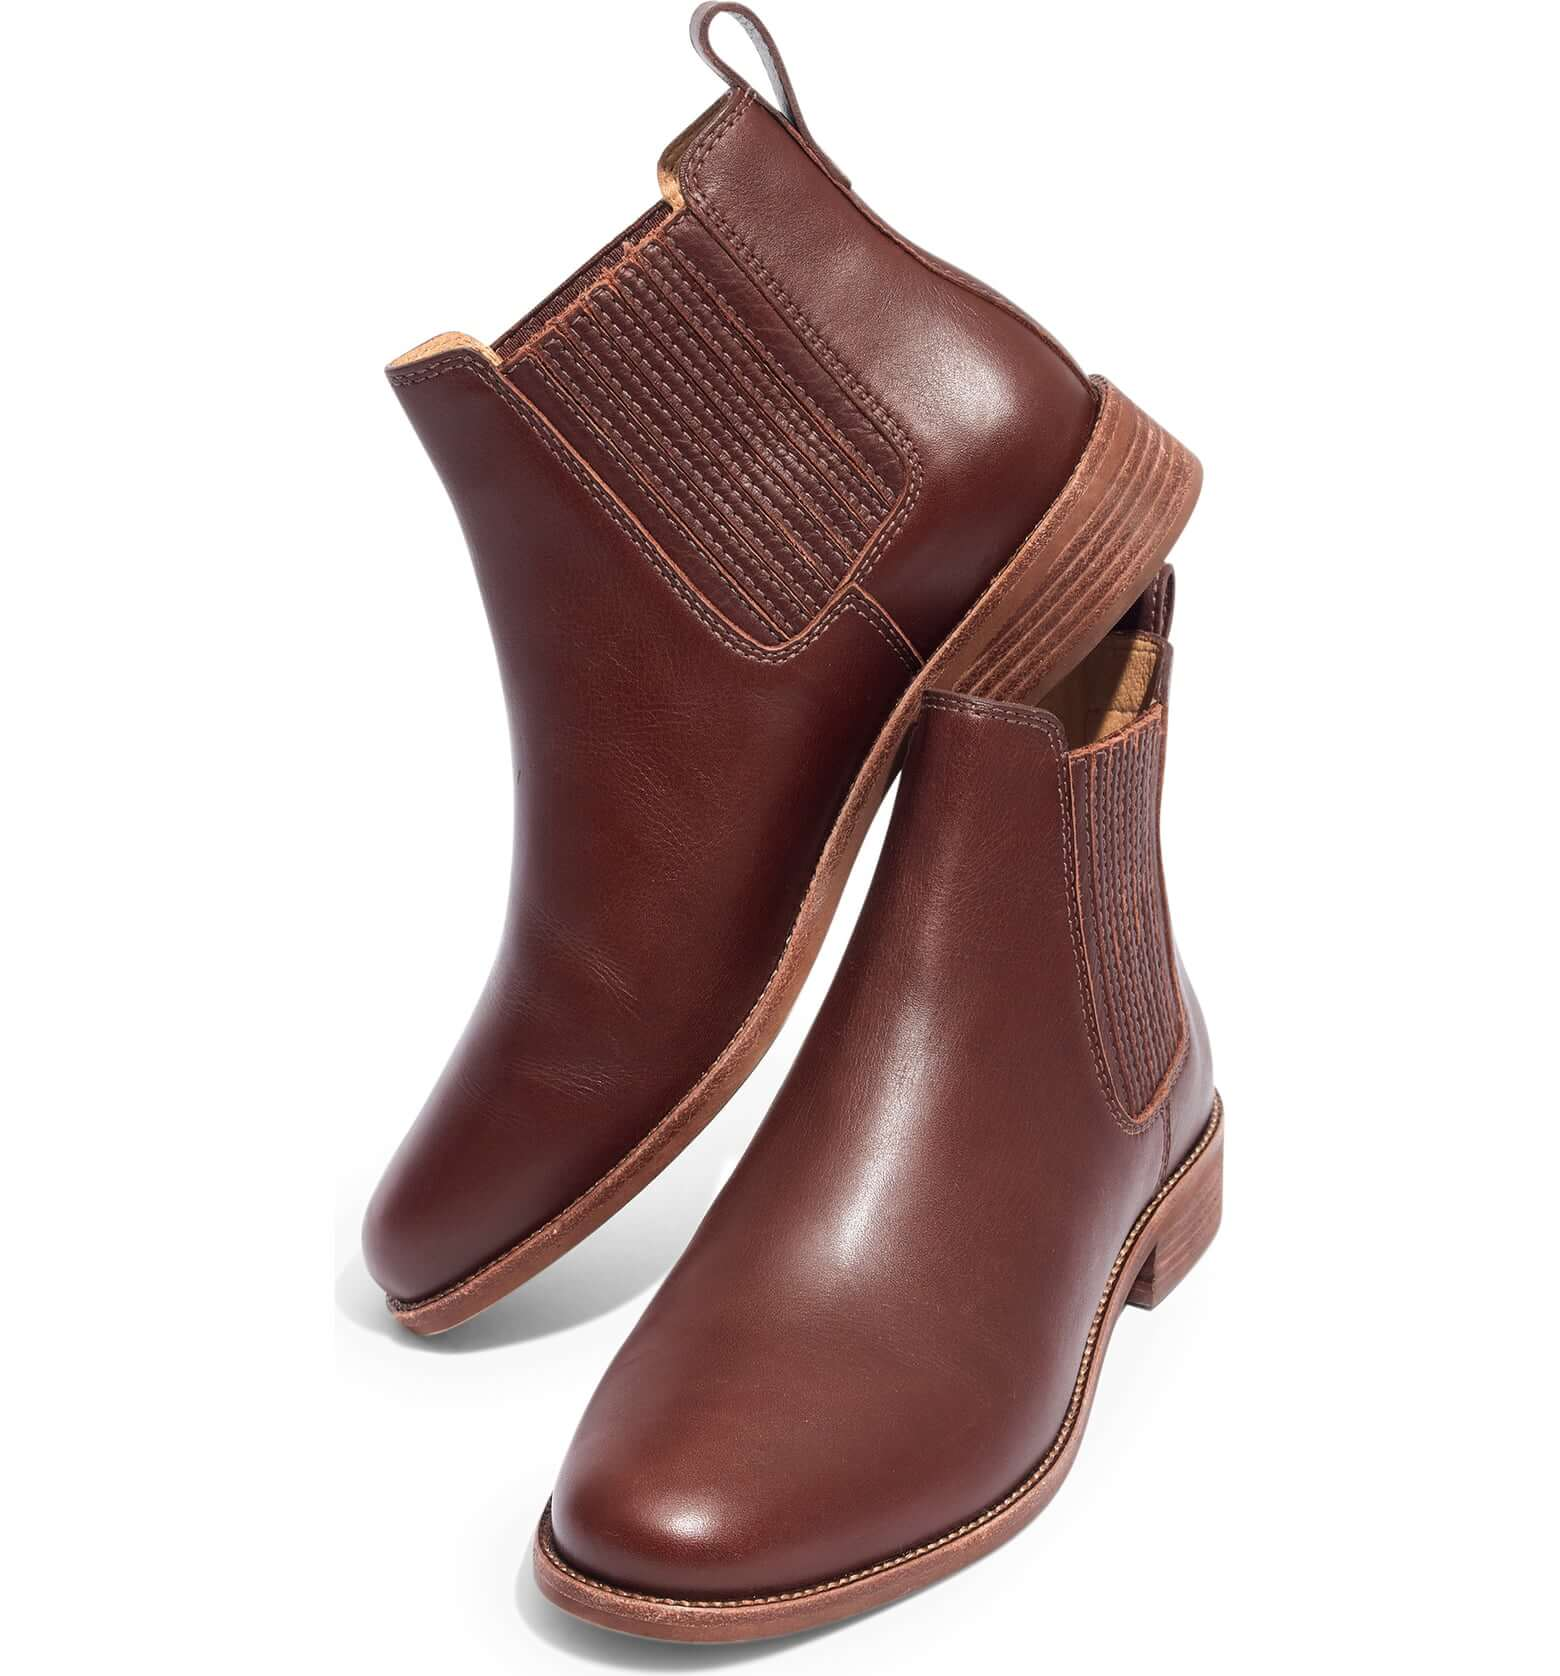 madewell-shoes-the-ainsley-chelsea-boot.jpeg